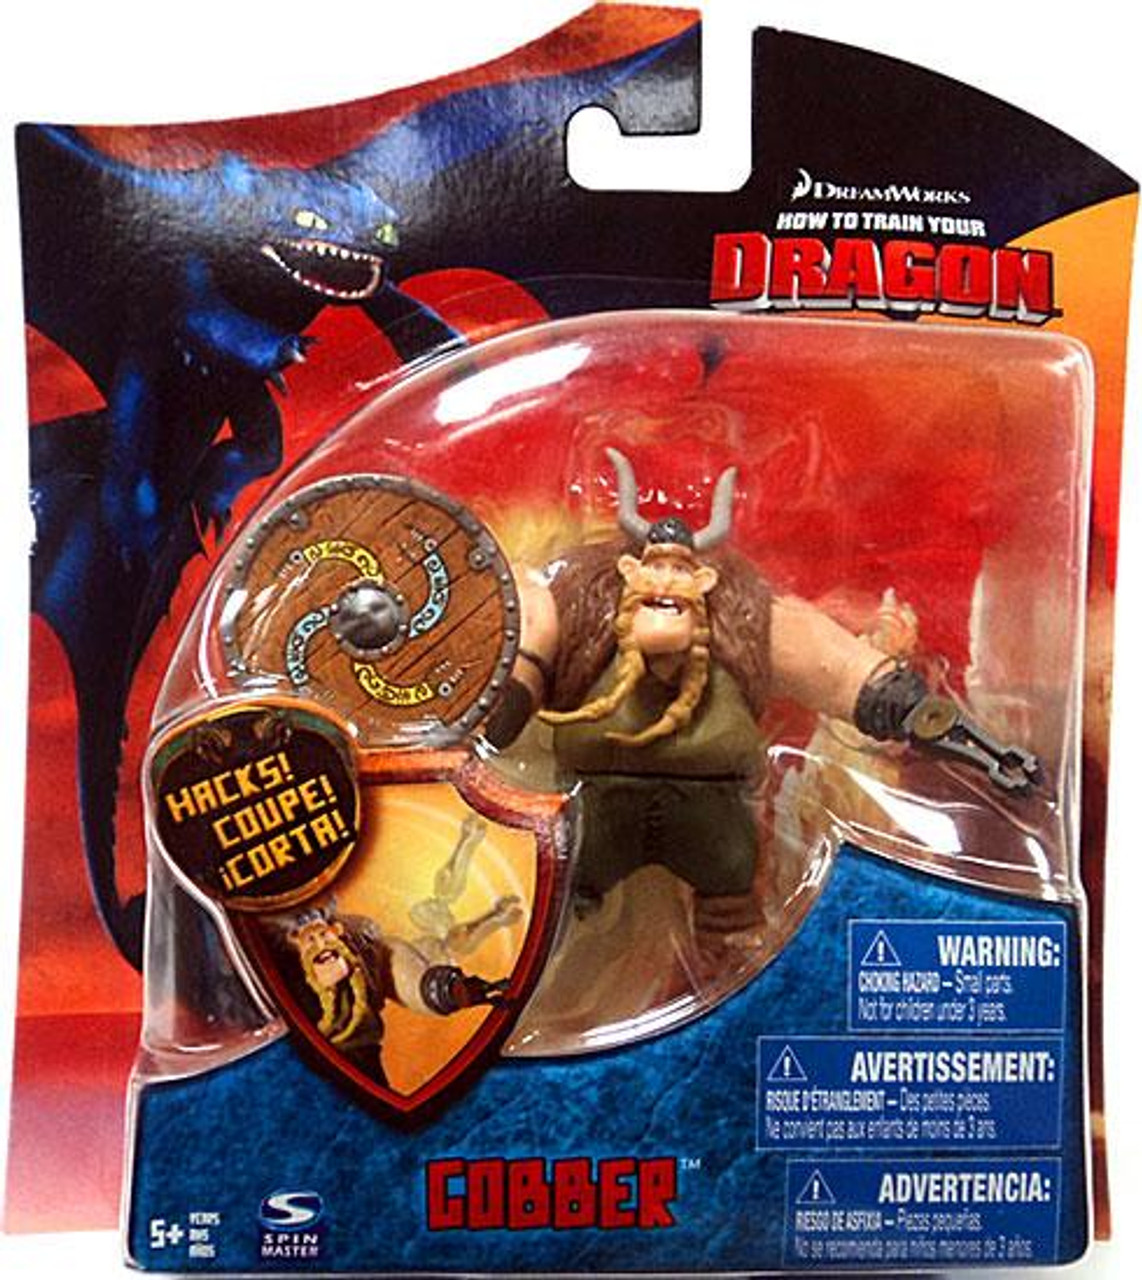 How to train your dragon series 3 gobber 4 action figure spin master how to train your dragon series 3 gobber 4 action figure spin master toywiz ccuart Images